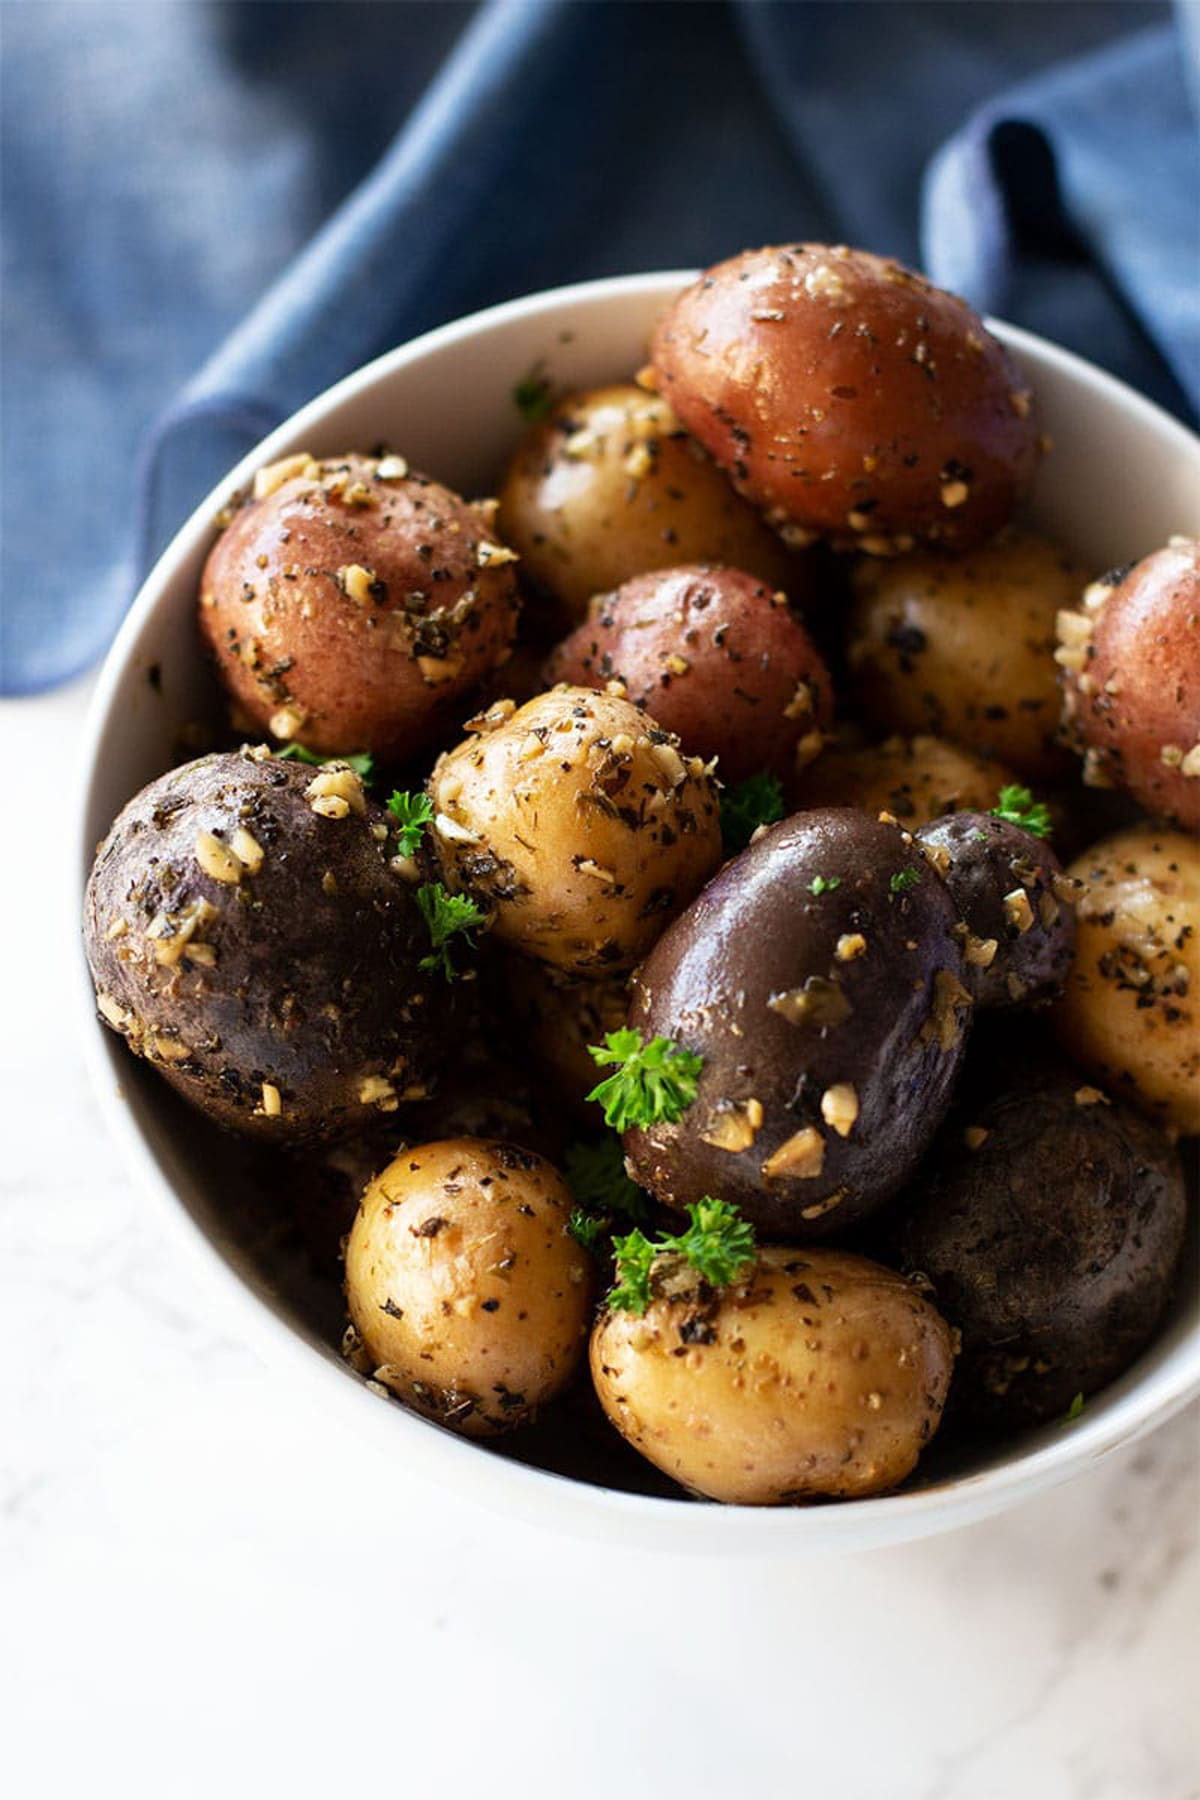 Smoked potatoes in a white bowl covered in garlic and parsley.